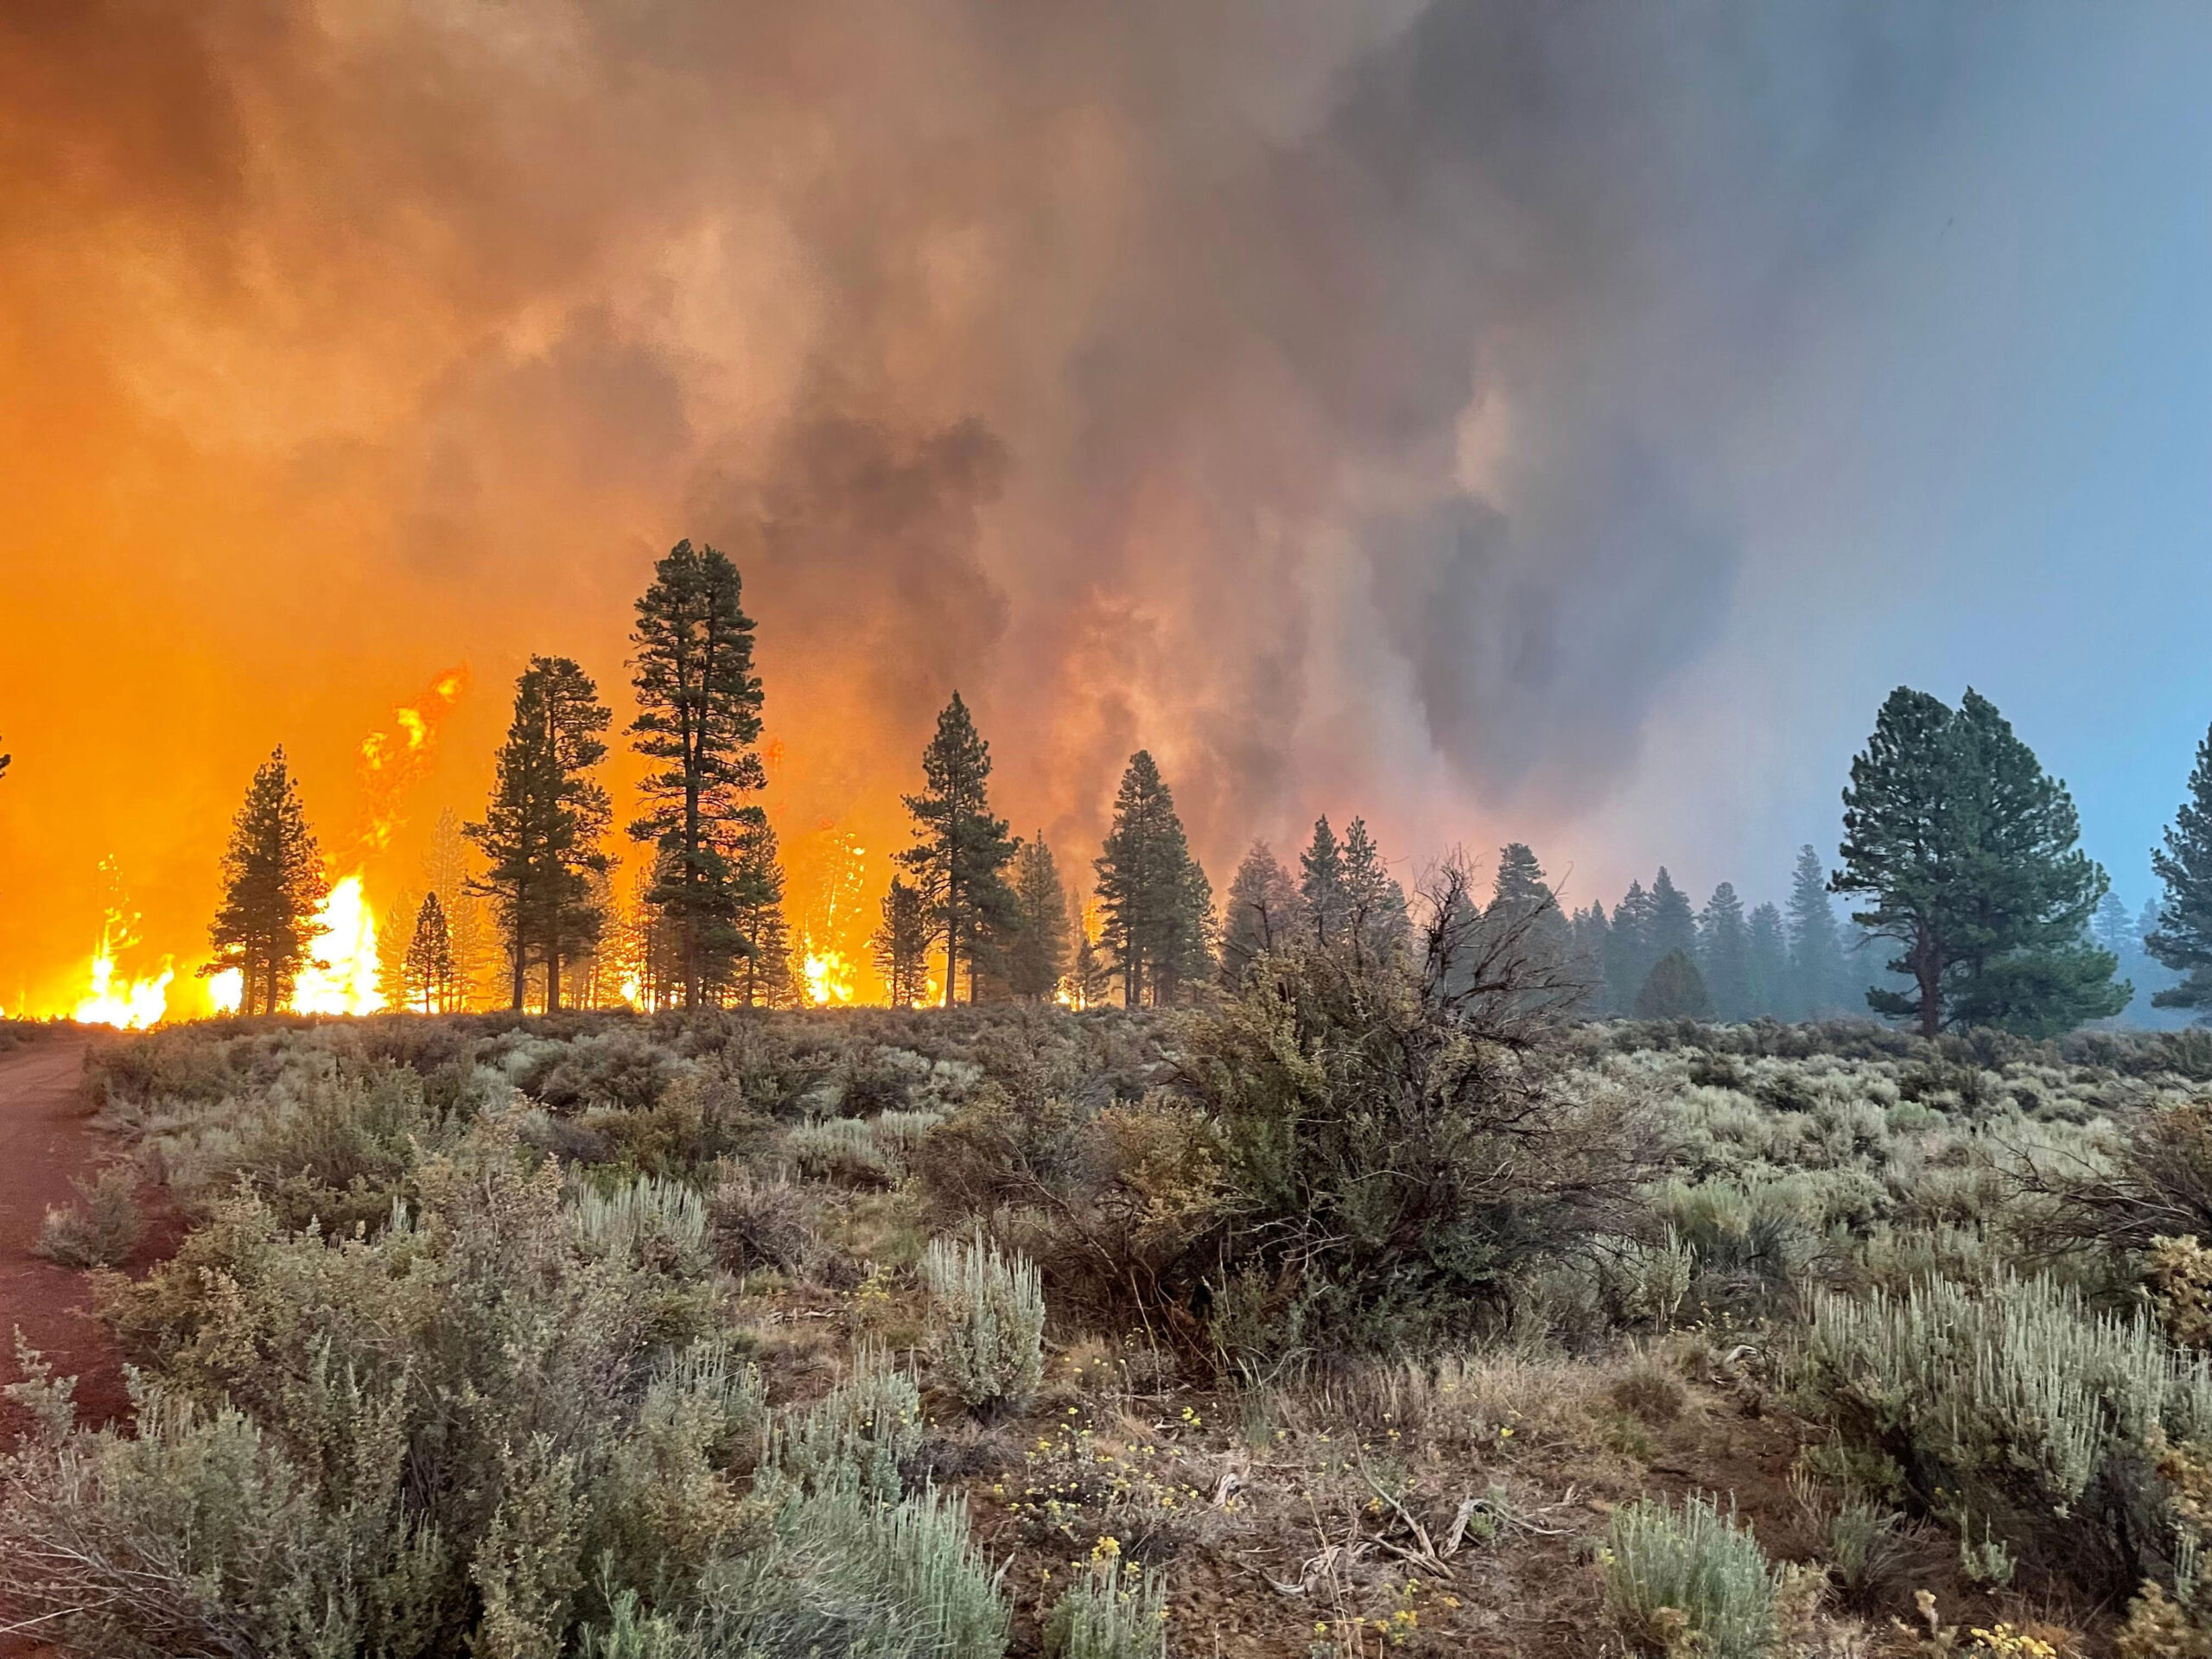 BLY, OREGON - JULY 12: In this handout provided by the USDA Forest Service, the Bootleg Fire burns on July 12, 2021 in Bly, Oregon. The Bootleg Fire has has spread over 212,377 acres, making it the largest among the dozens of blazes burning in the western U.S. fueled by record temperatures and drought.  (Photo by USDA Forest Service via Getty Images)